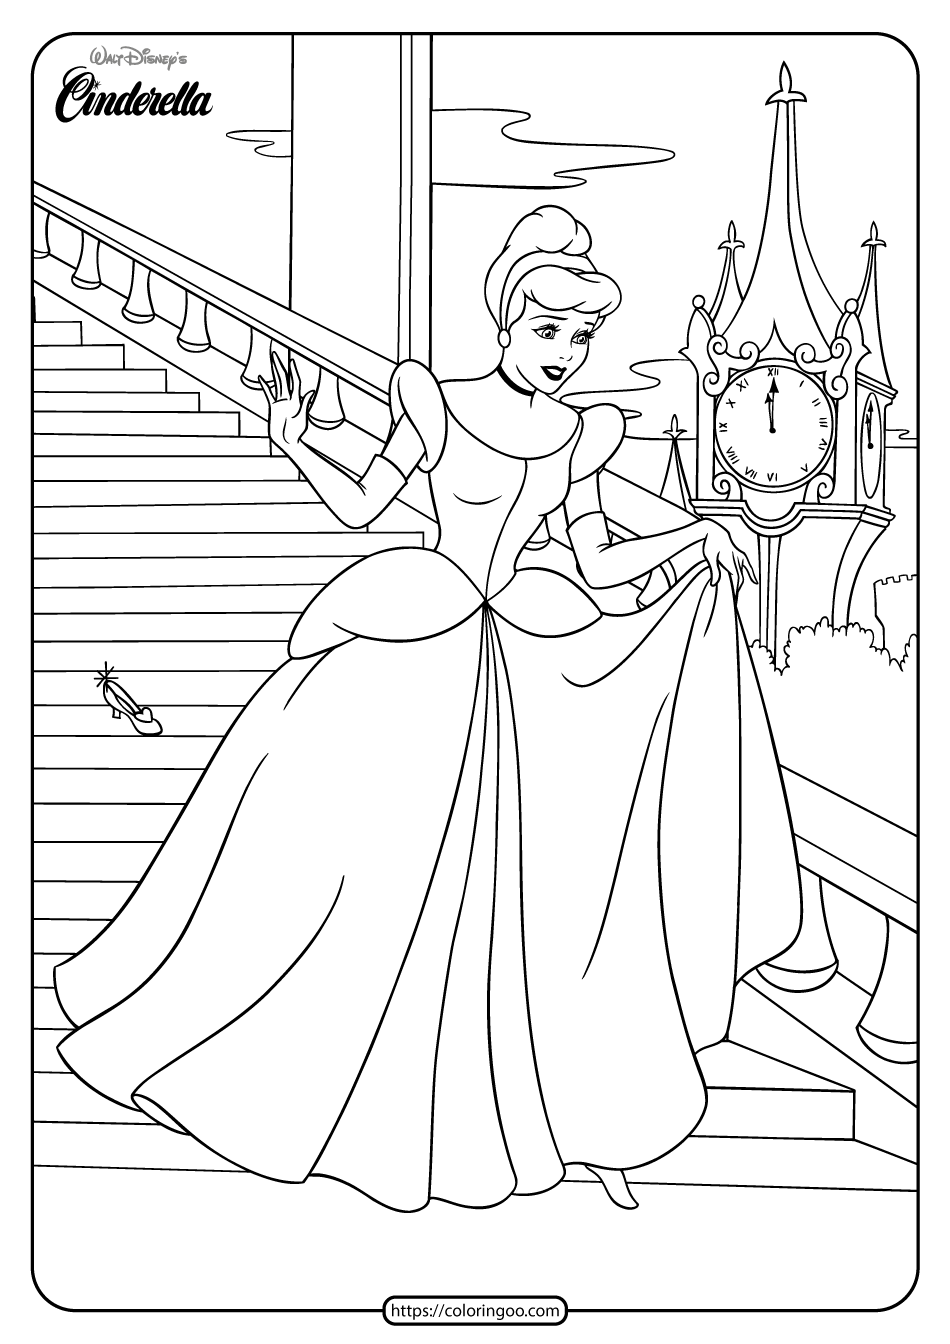 coloring cinderella pictures coloring pages cinderella free printable coloring pages pictures coloring cinderella